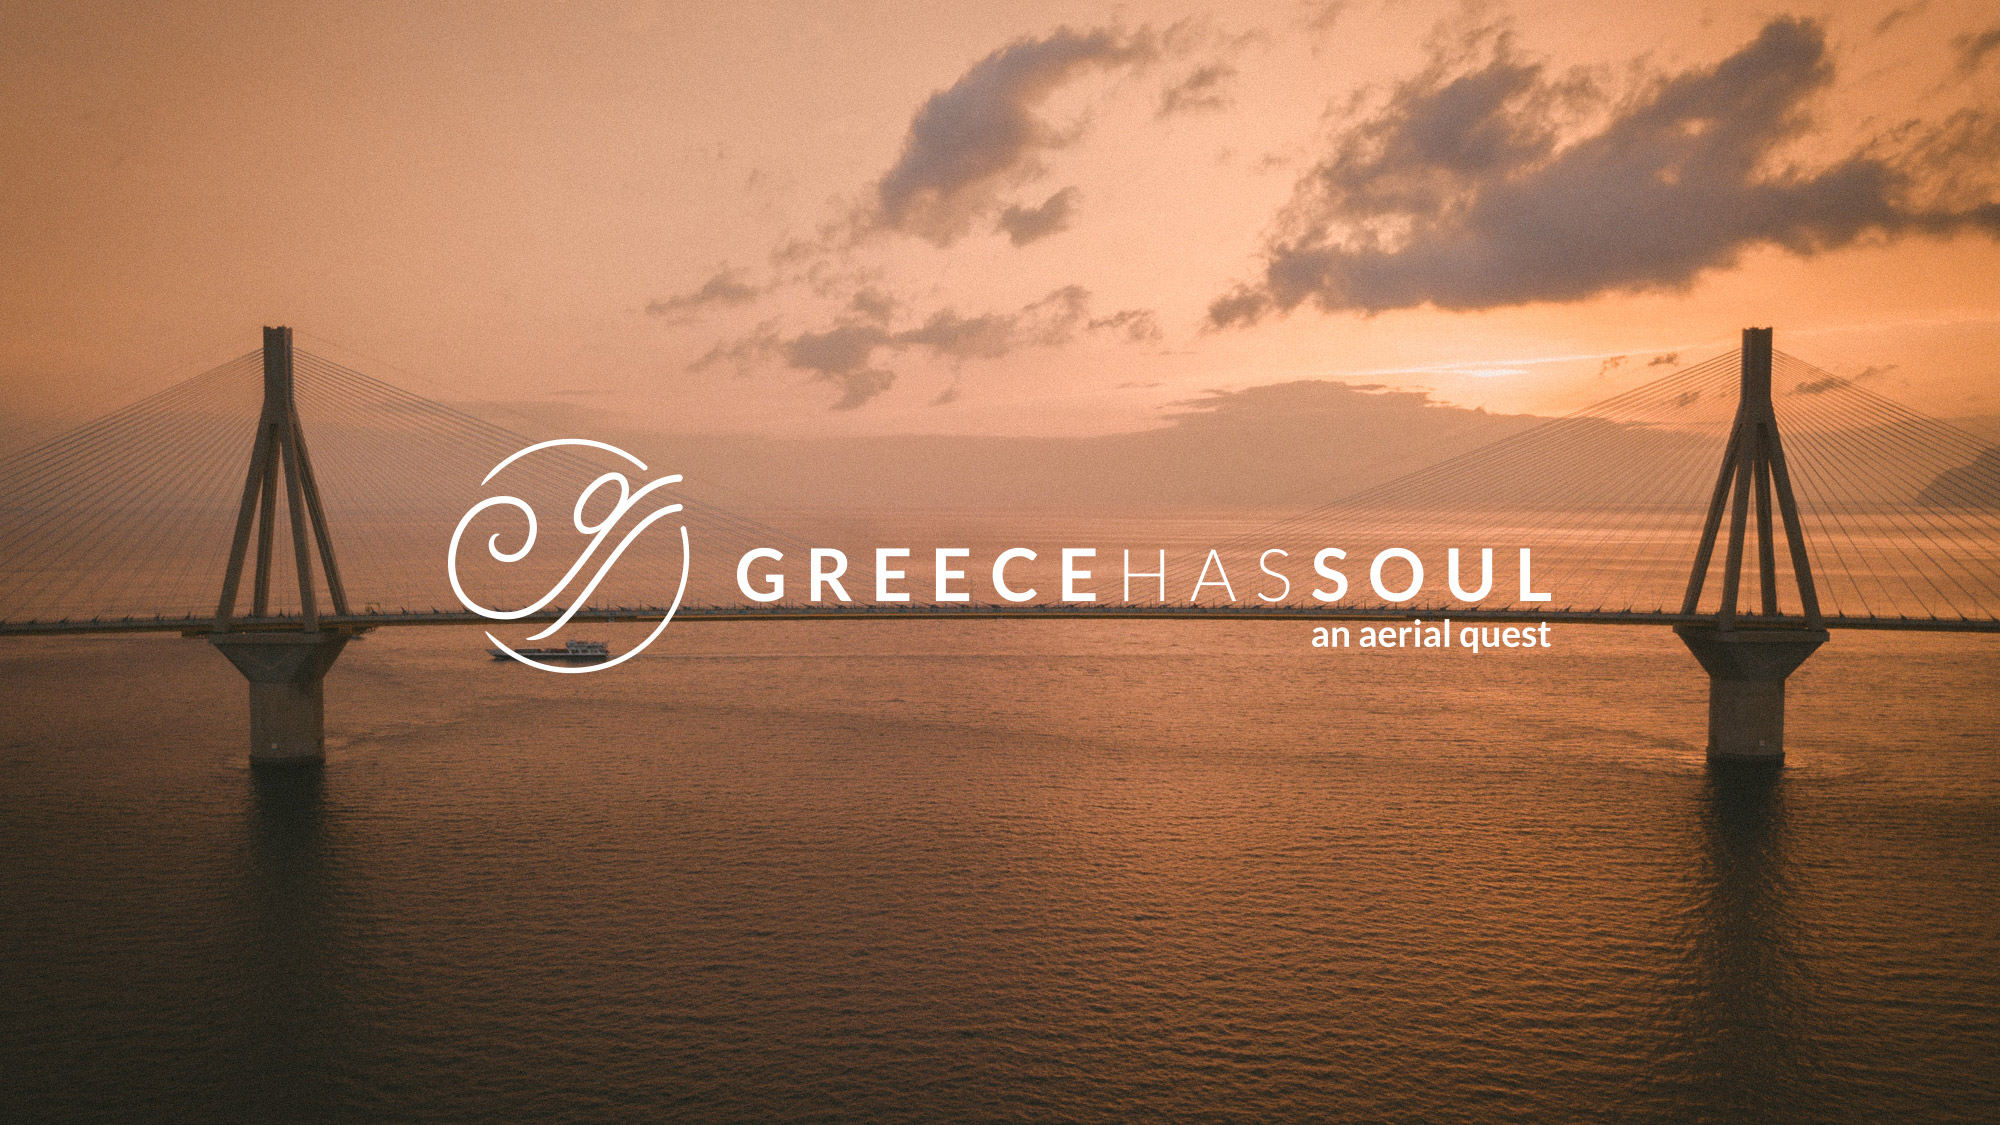 GREECE HAS SOUL – RIO ANTIRRIO BRIDGE